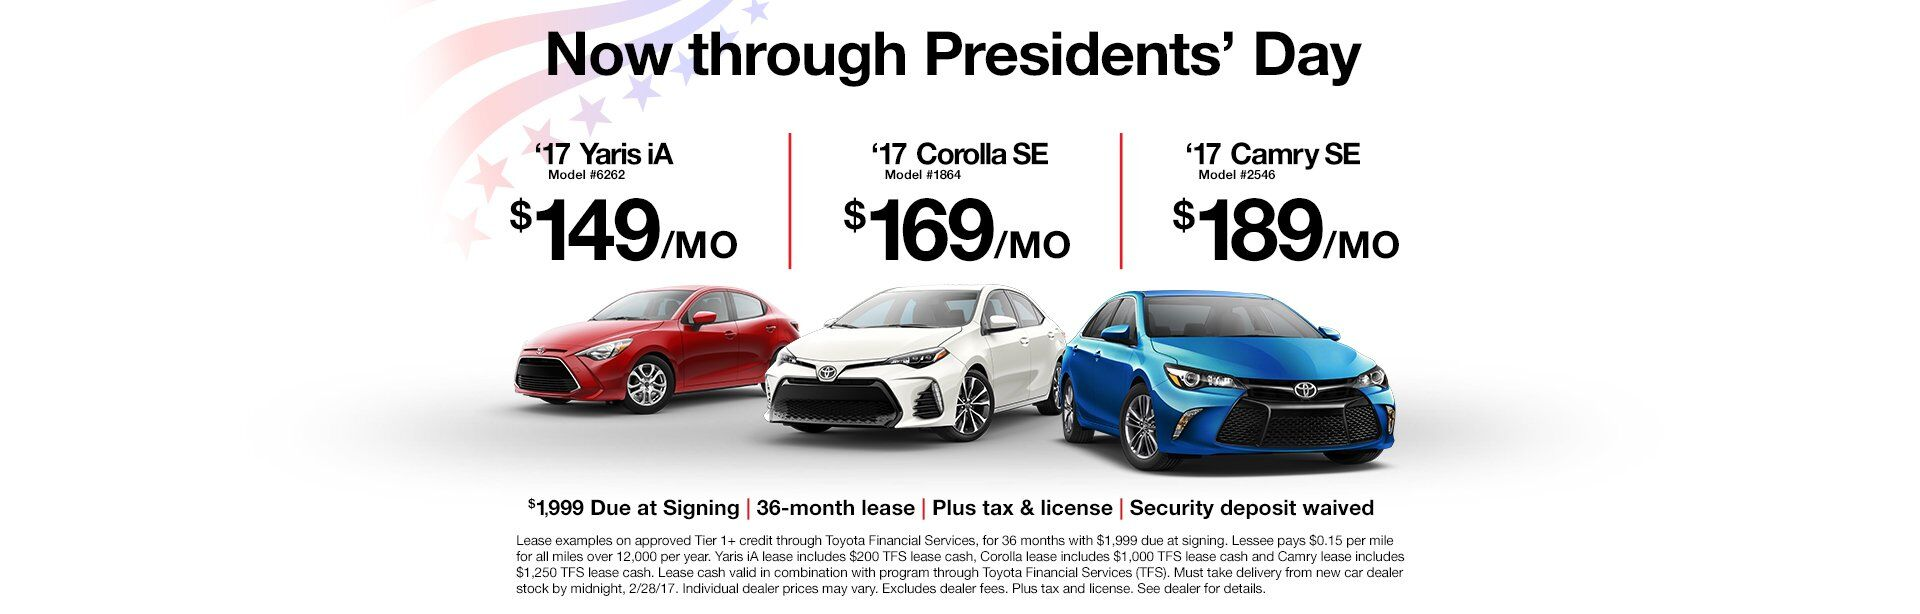 President's Day Lease Deal